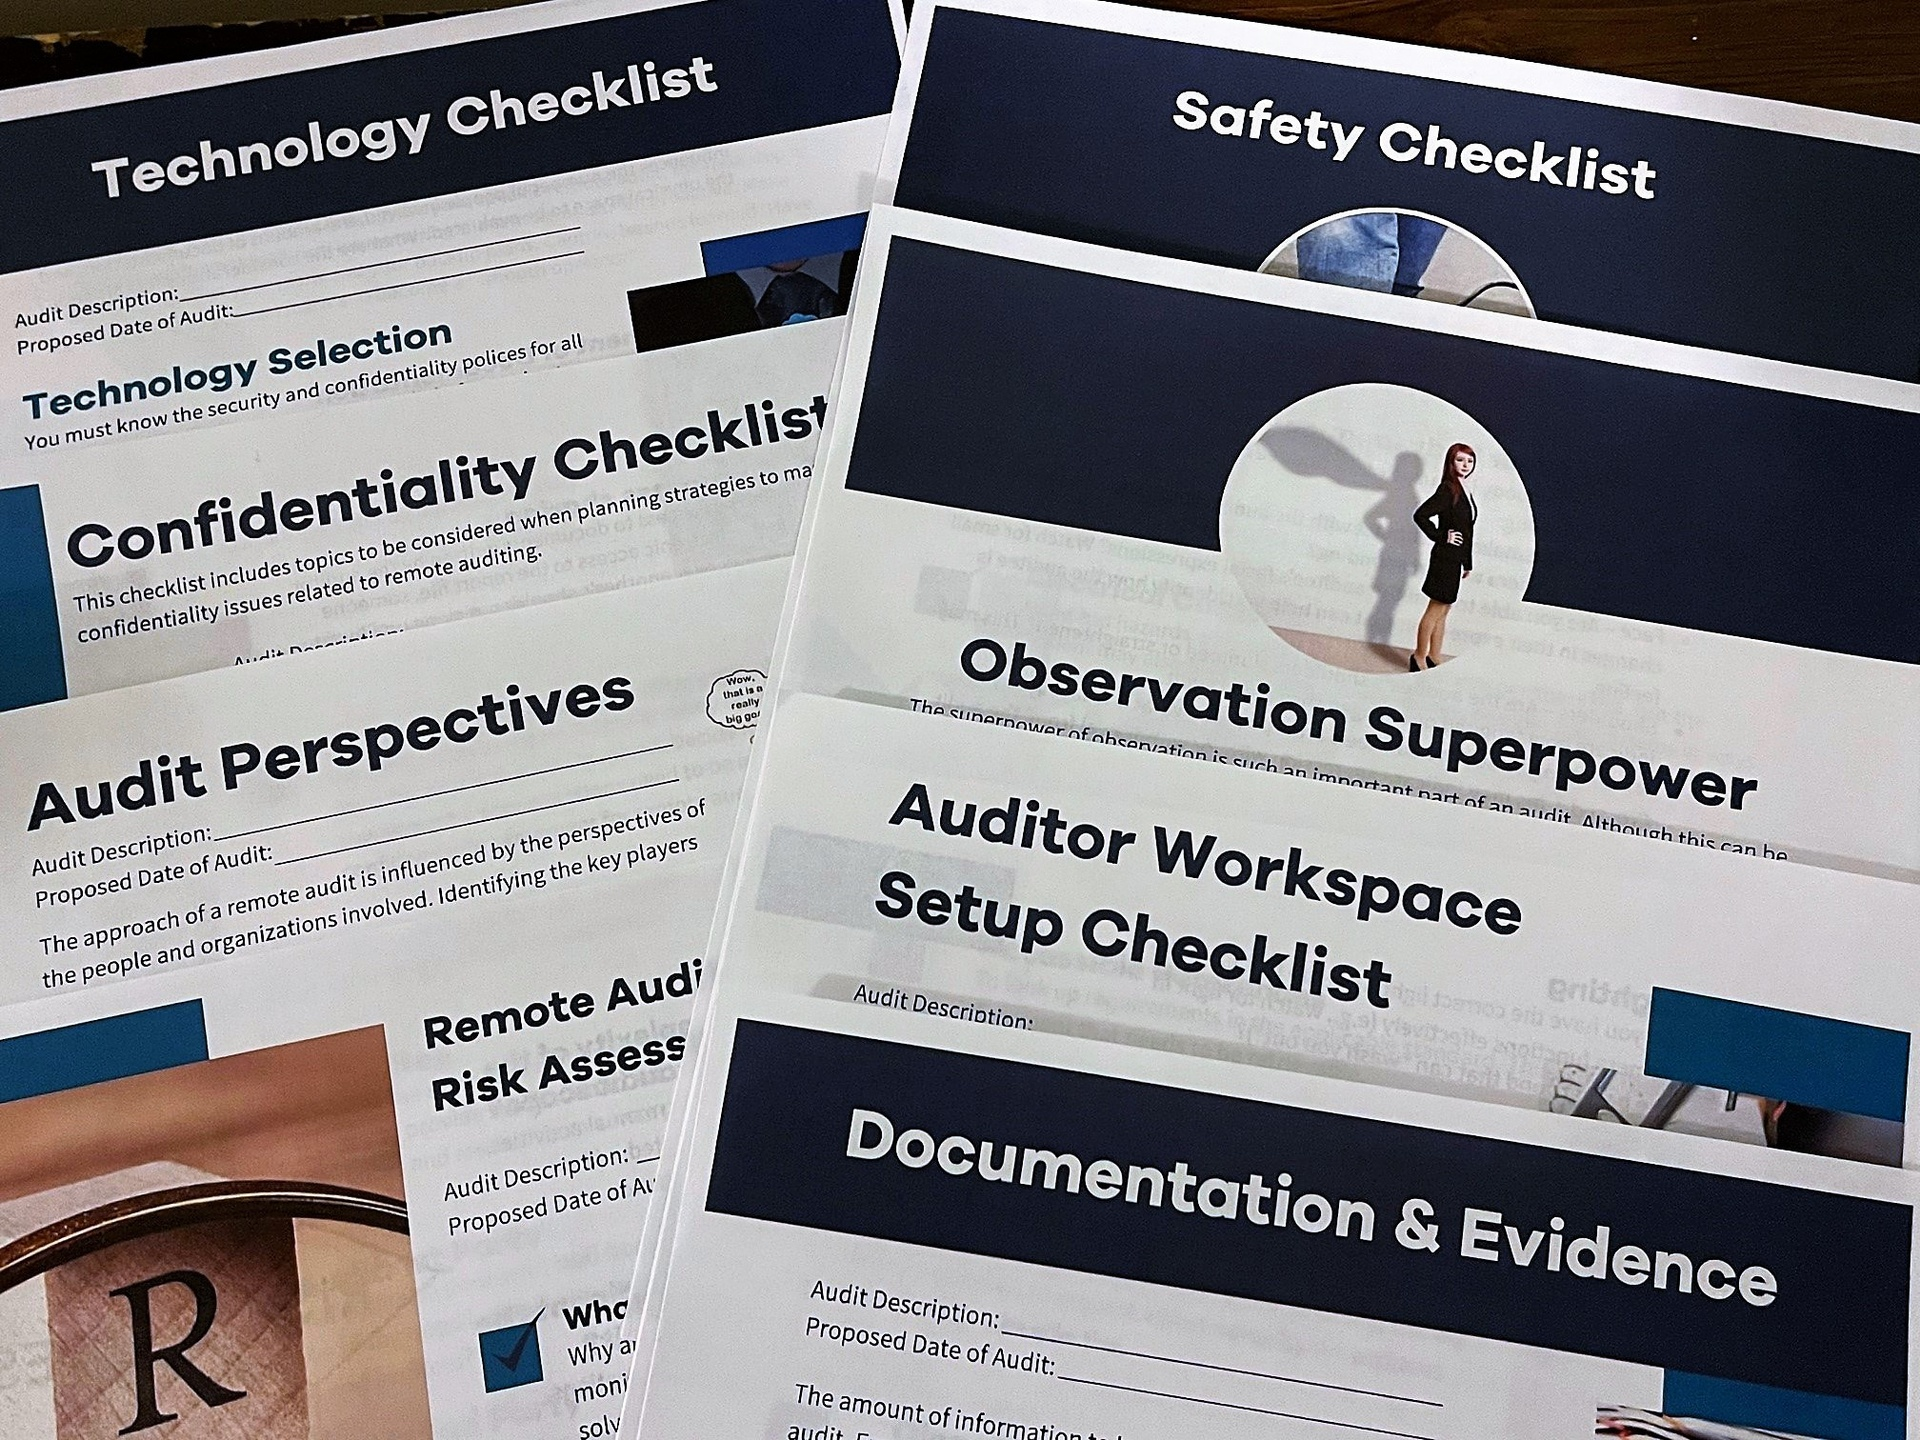 Remote Audit Checklists spread out on a desk